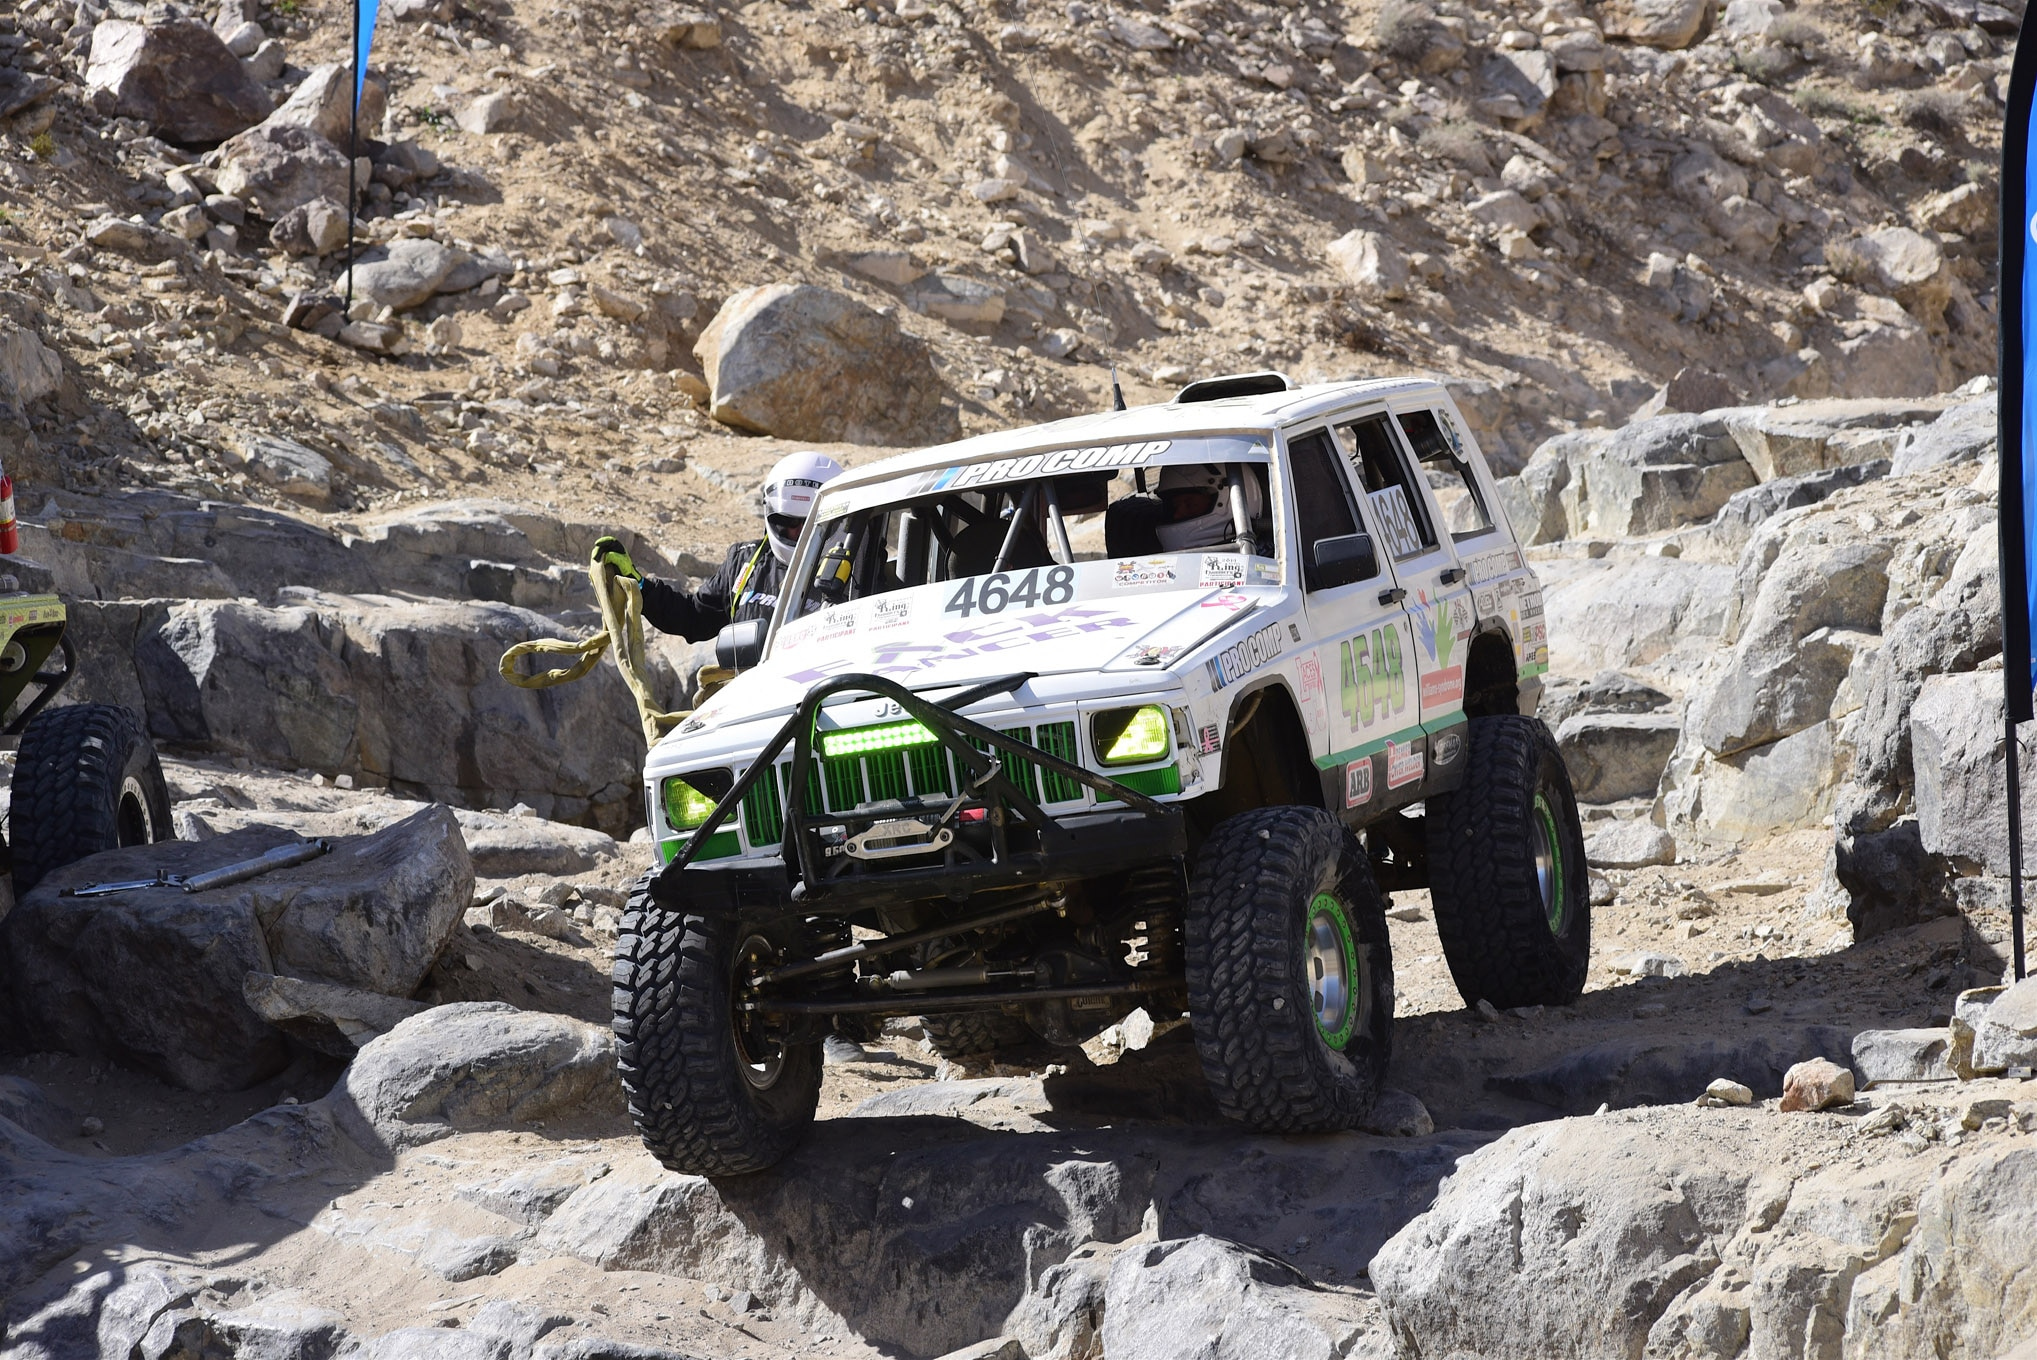 158 2017 king of the hammers koh racecar action on course stuart bourdon photographer